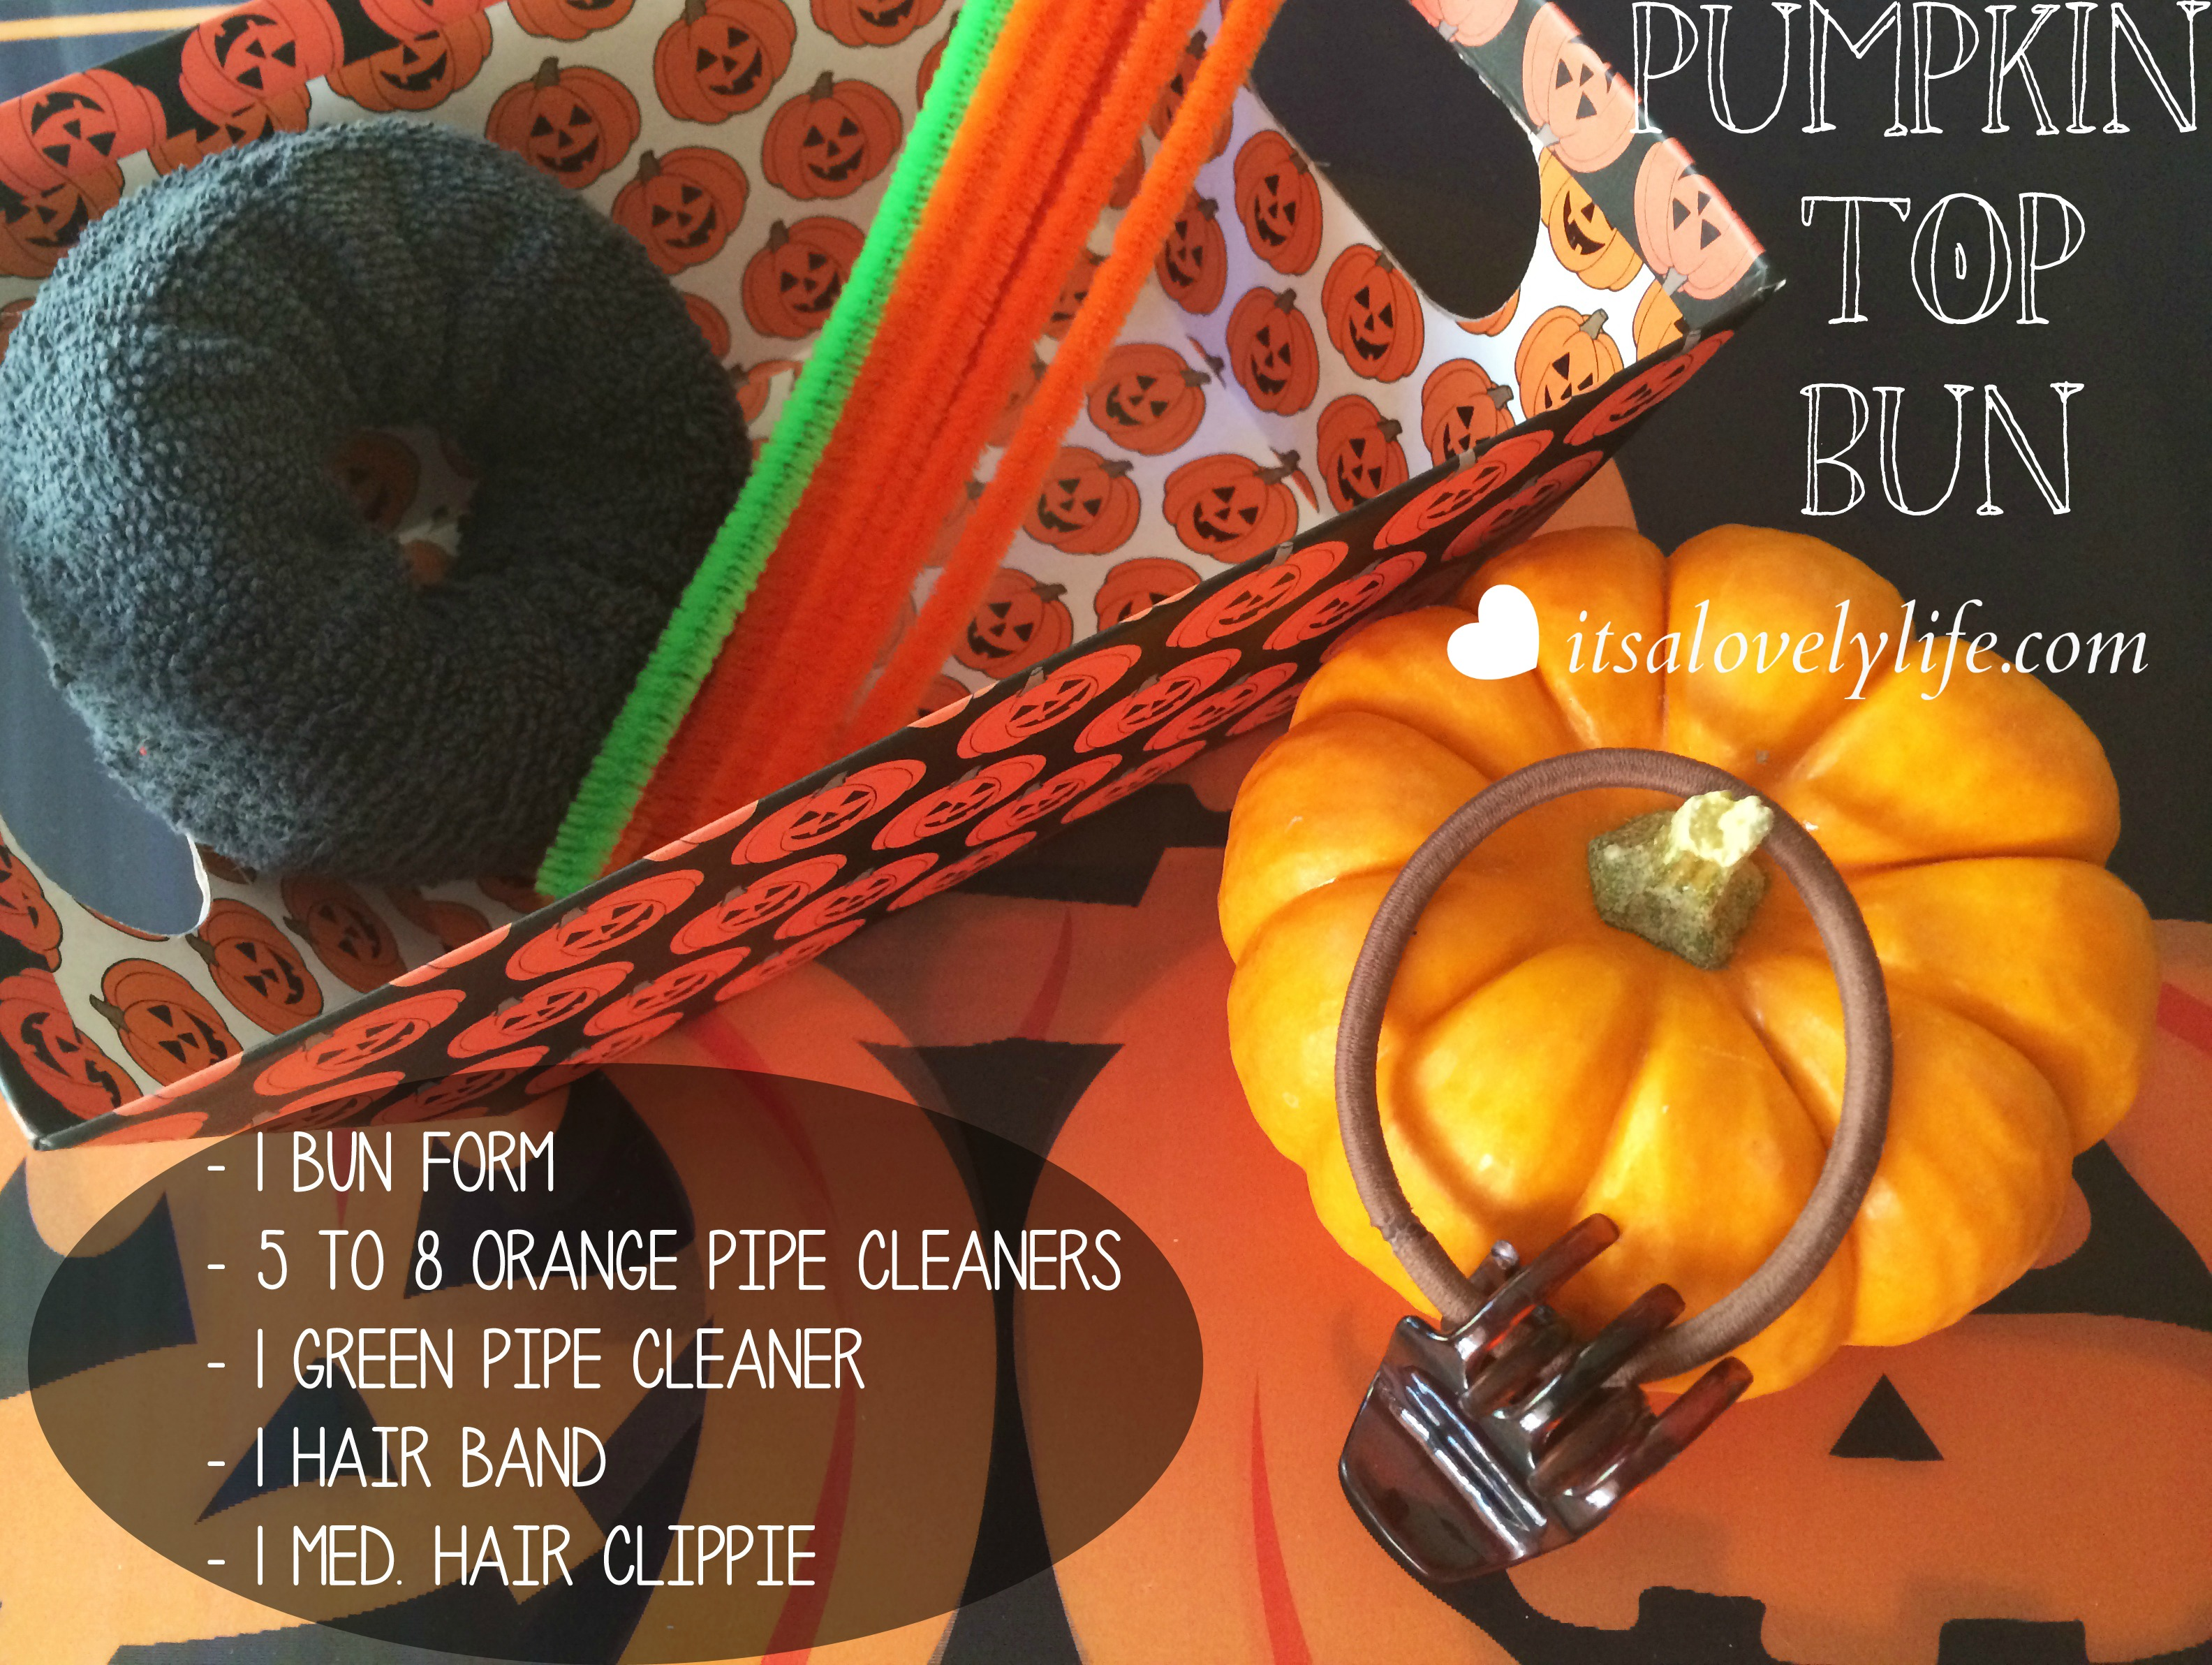 Pumpkin Top Bun10